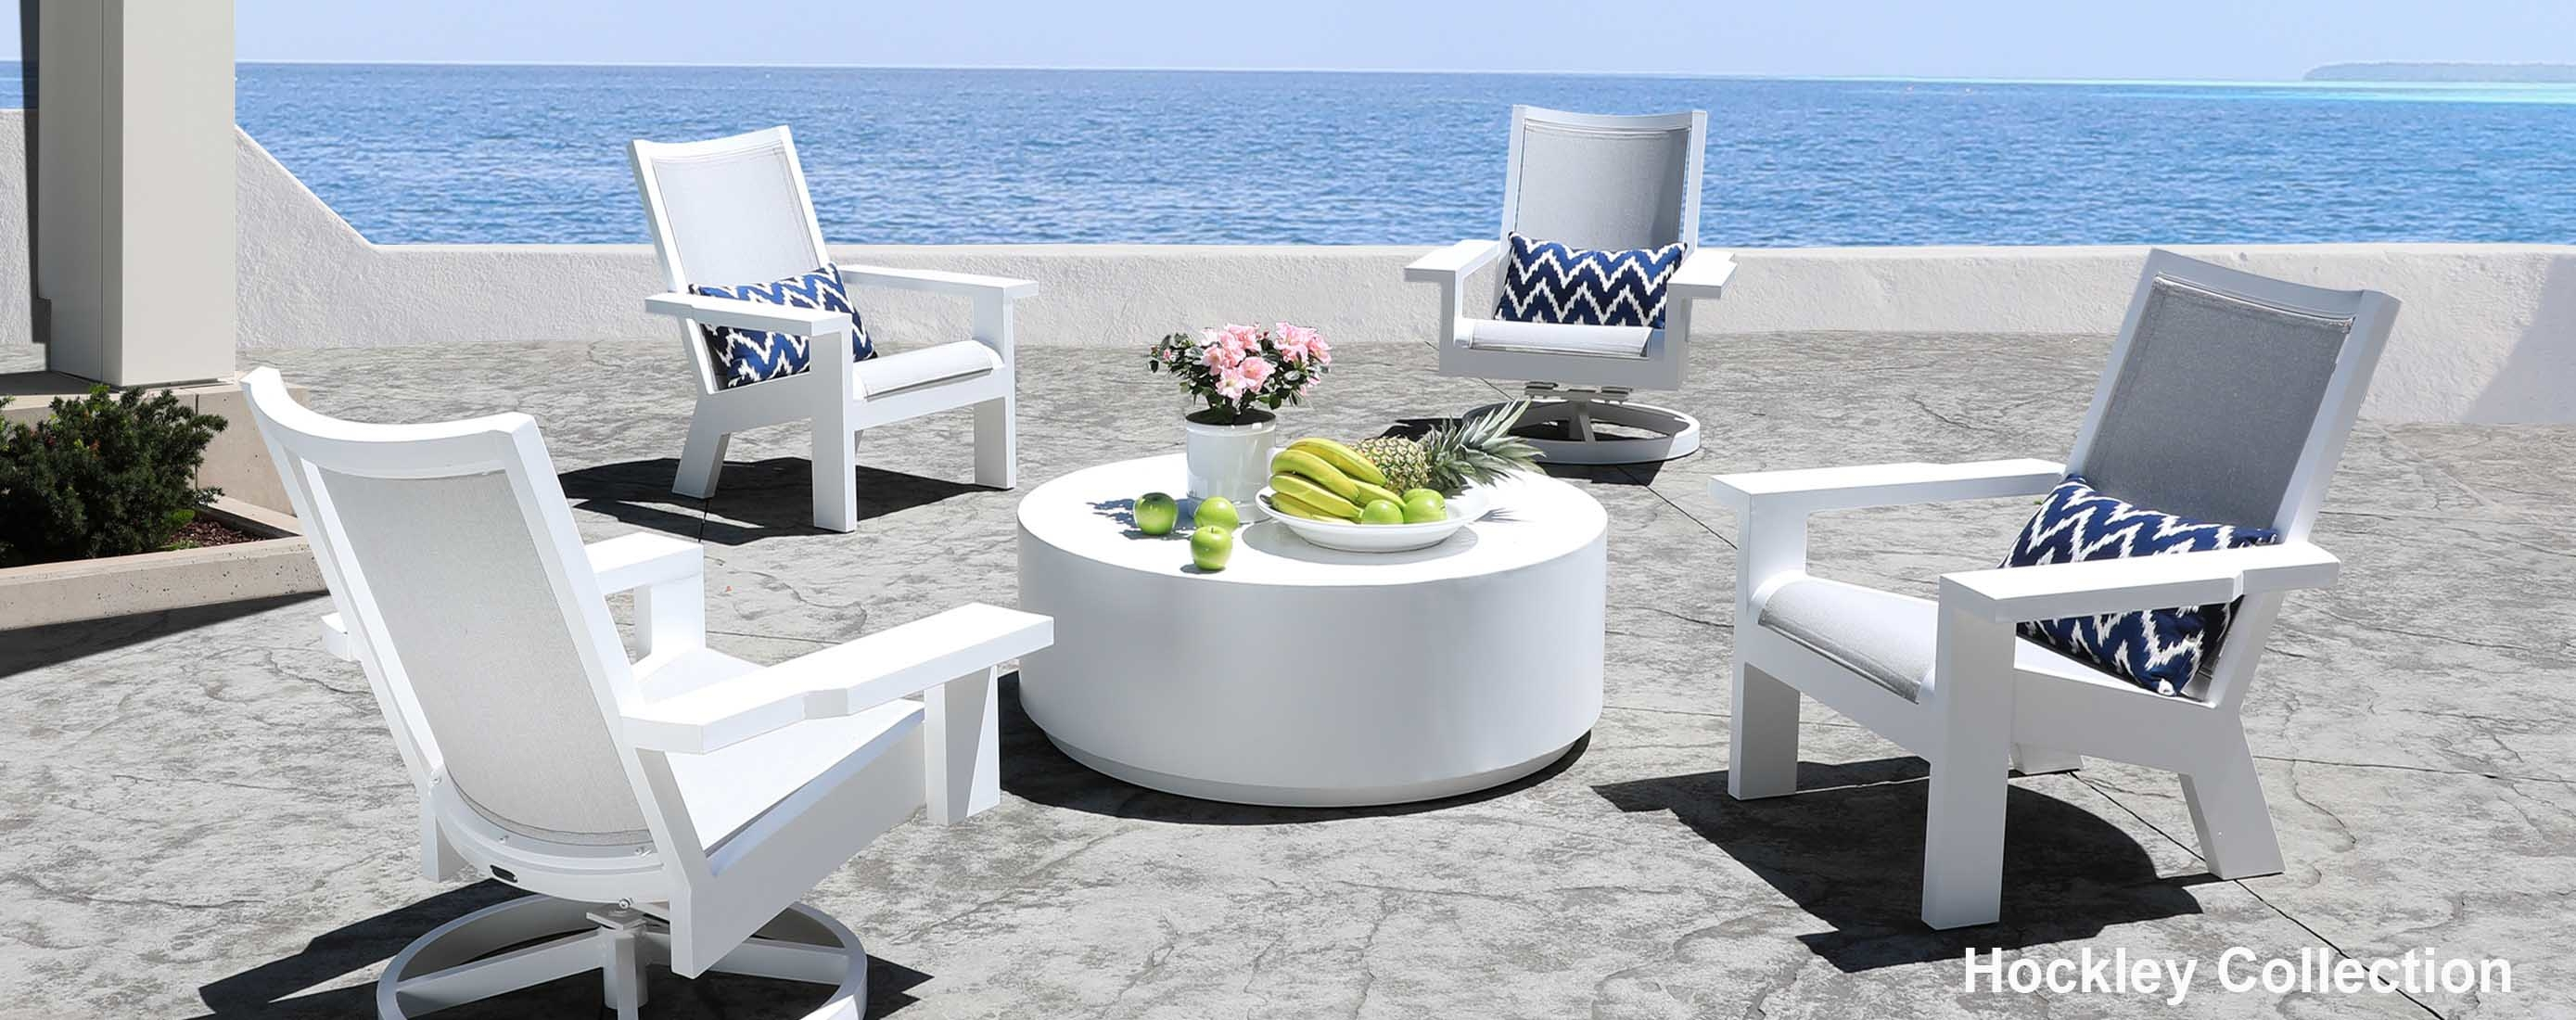 Do you want your patio furniture to look beautiful for years to come? If so, check out our top 10 easy maintenance tips below! 1